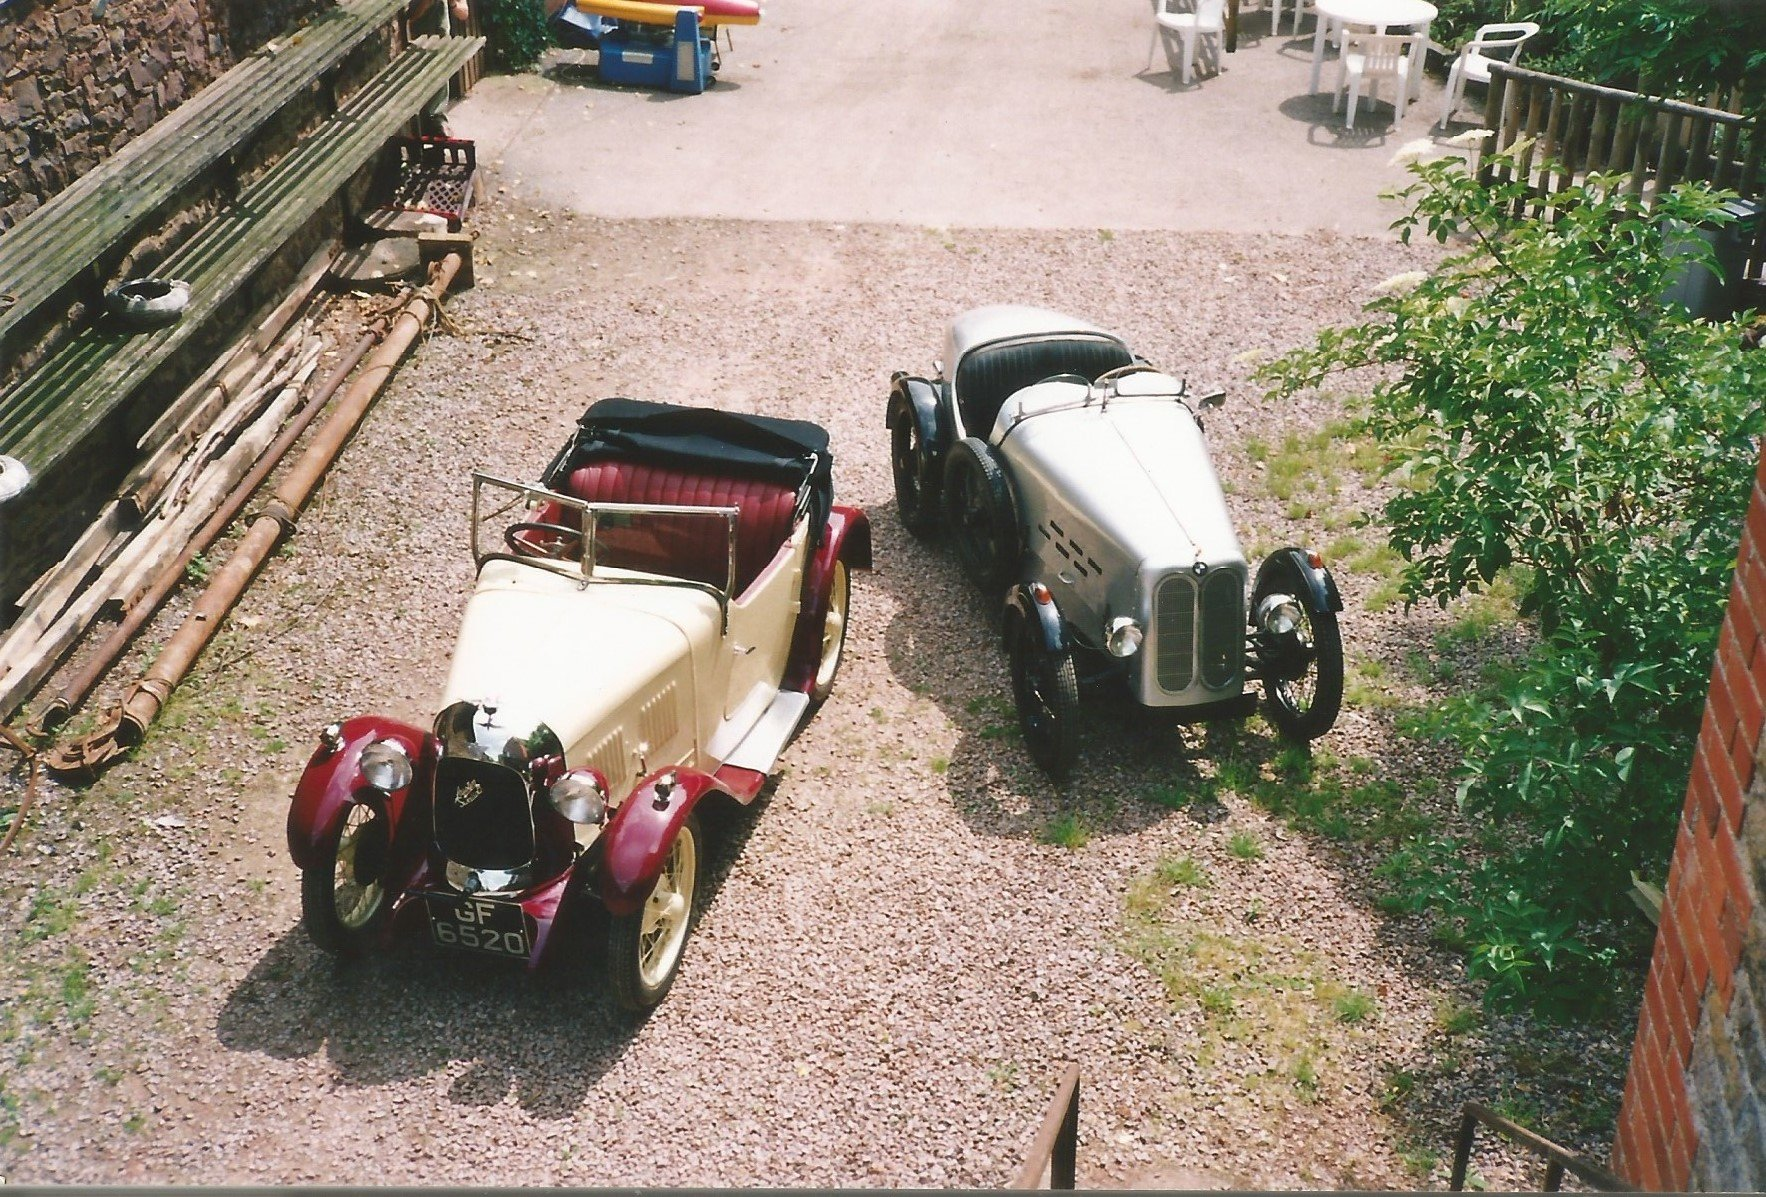 1929 BMW Austin 7 Fitted with JHLE sports600 body For Sale (picture 2 of 6)